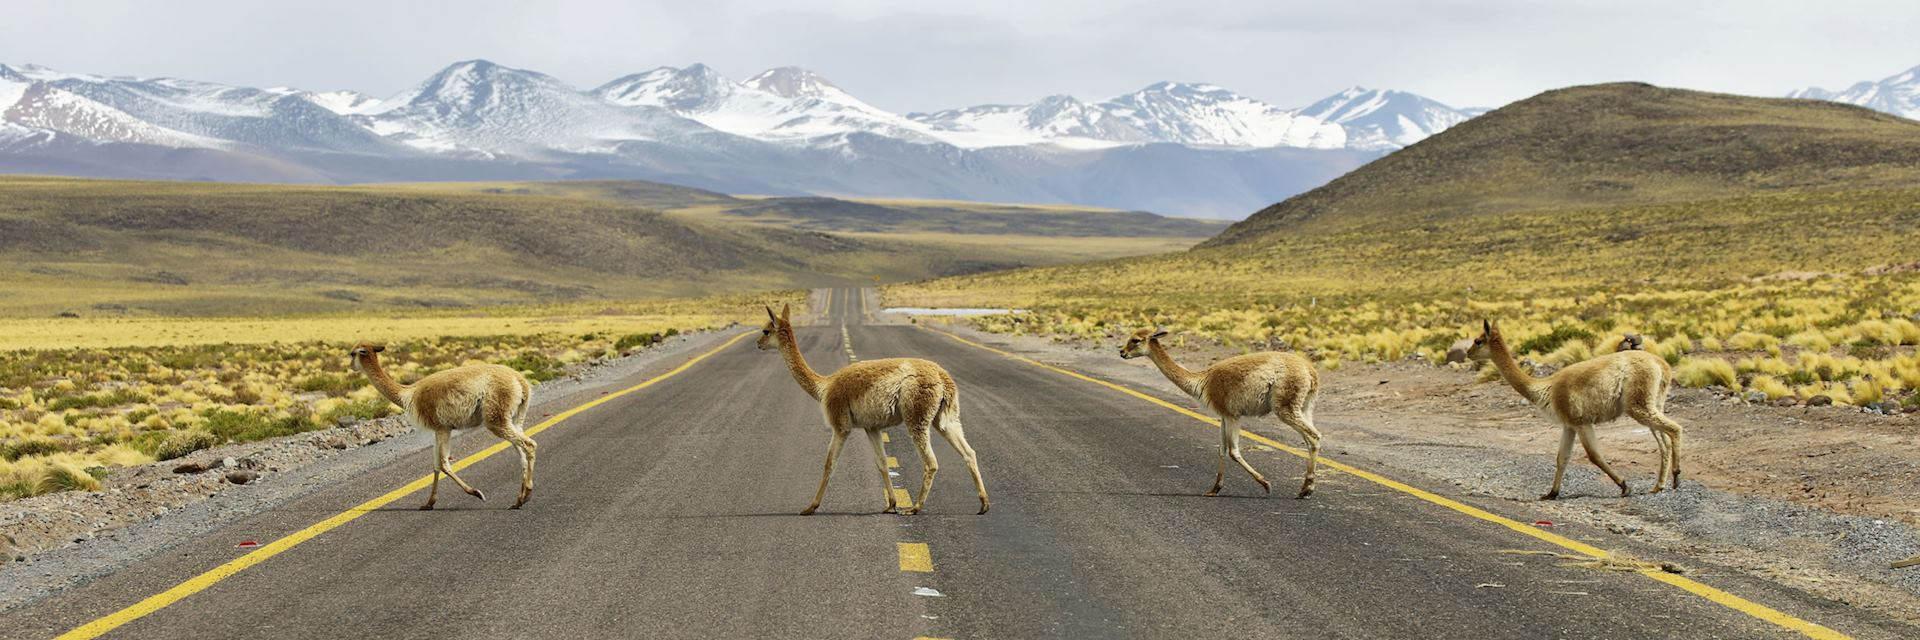 Vicunas in the meadows of the Atacama region